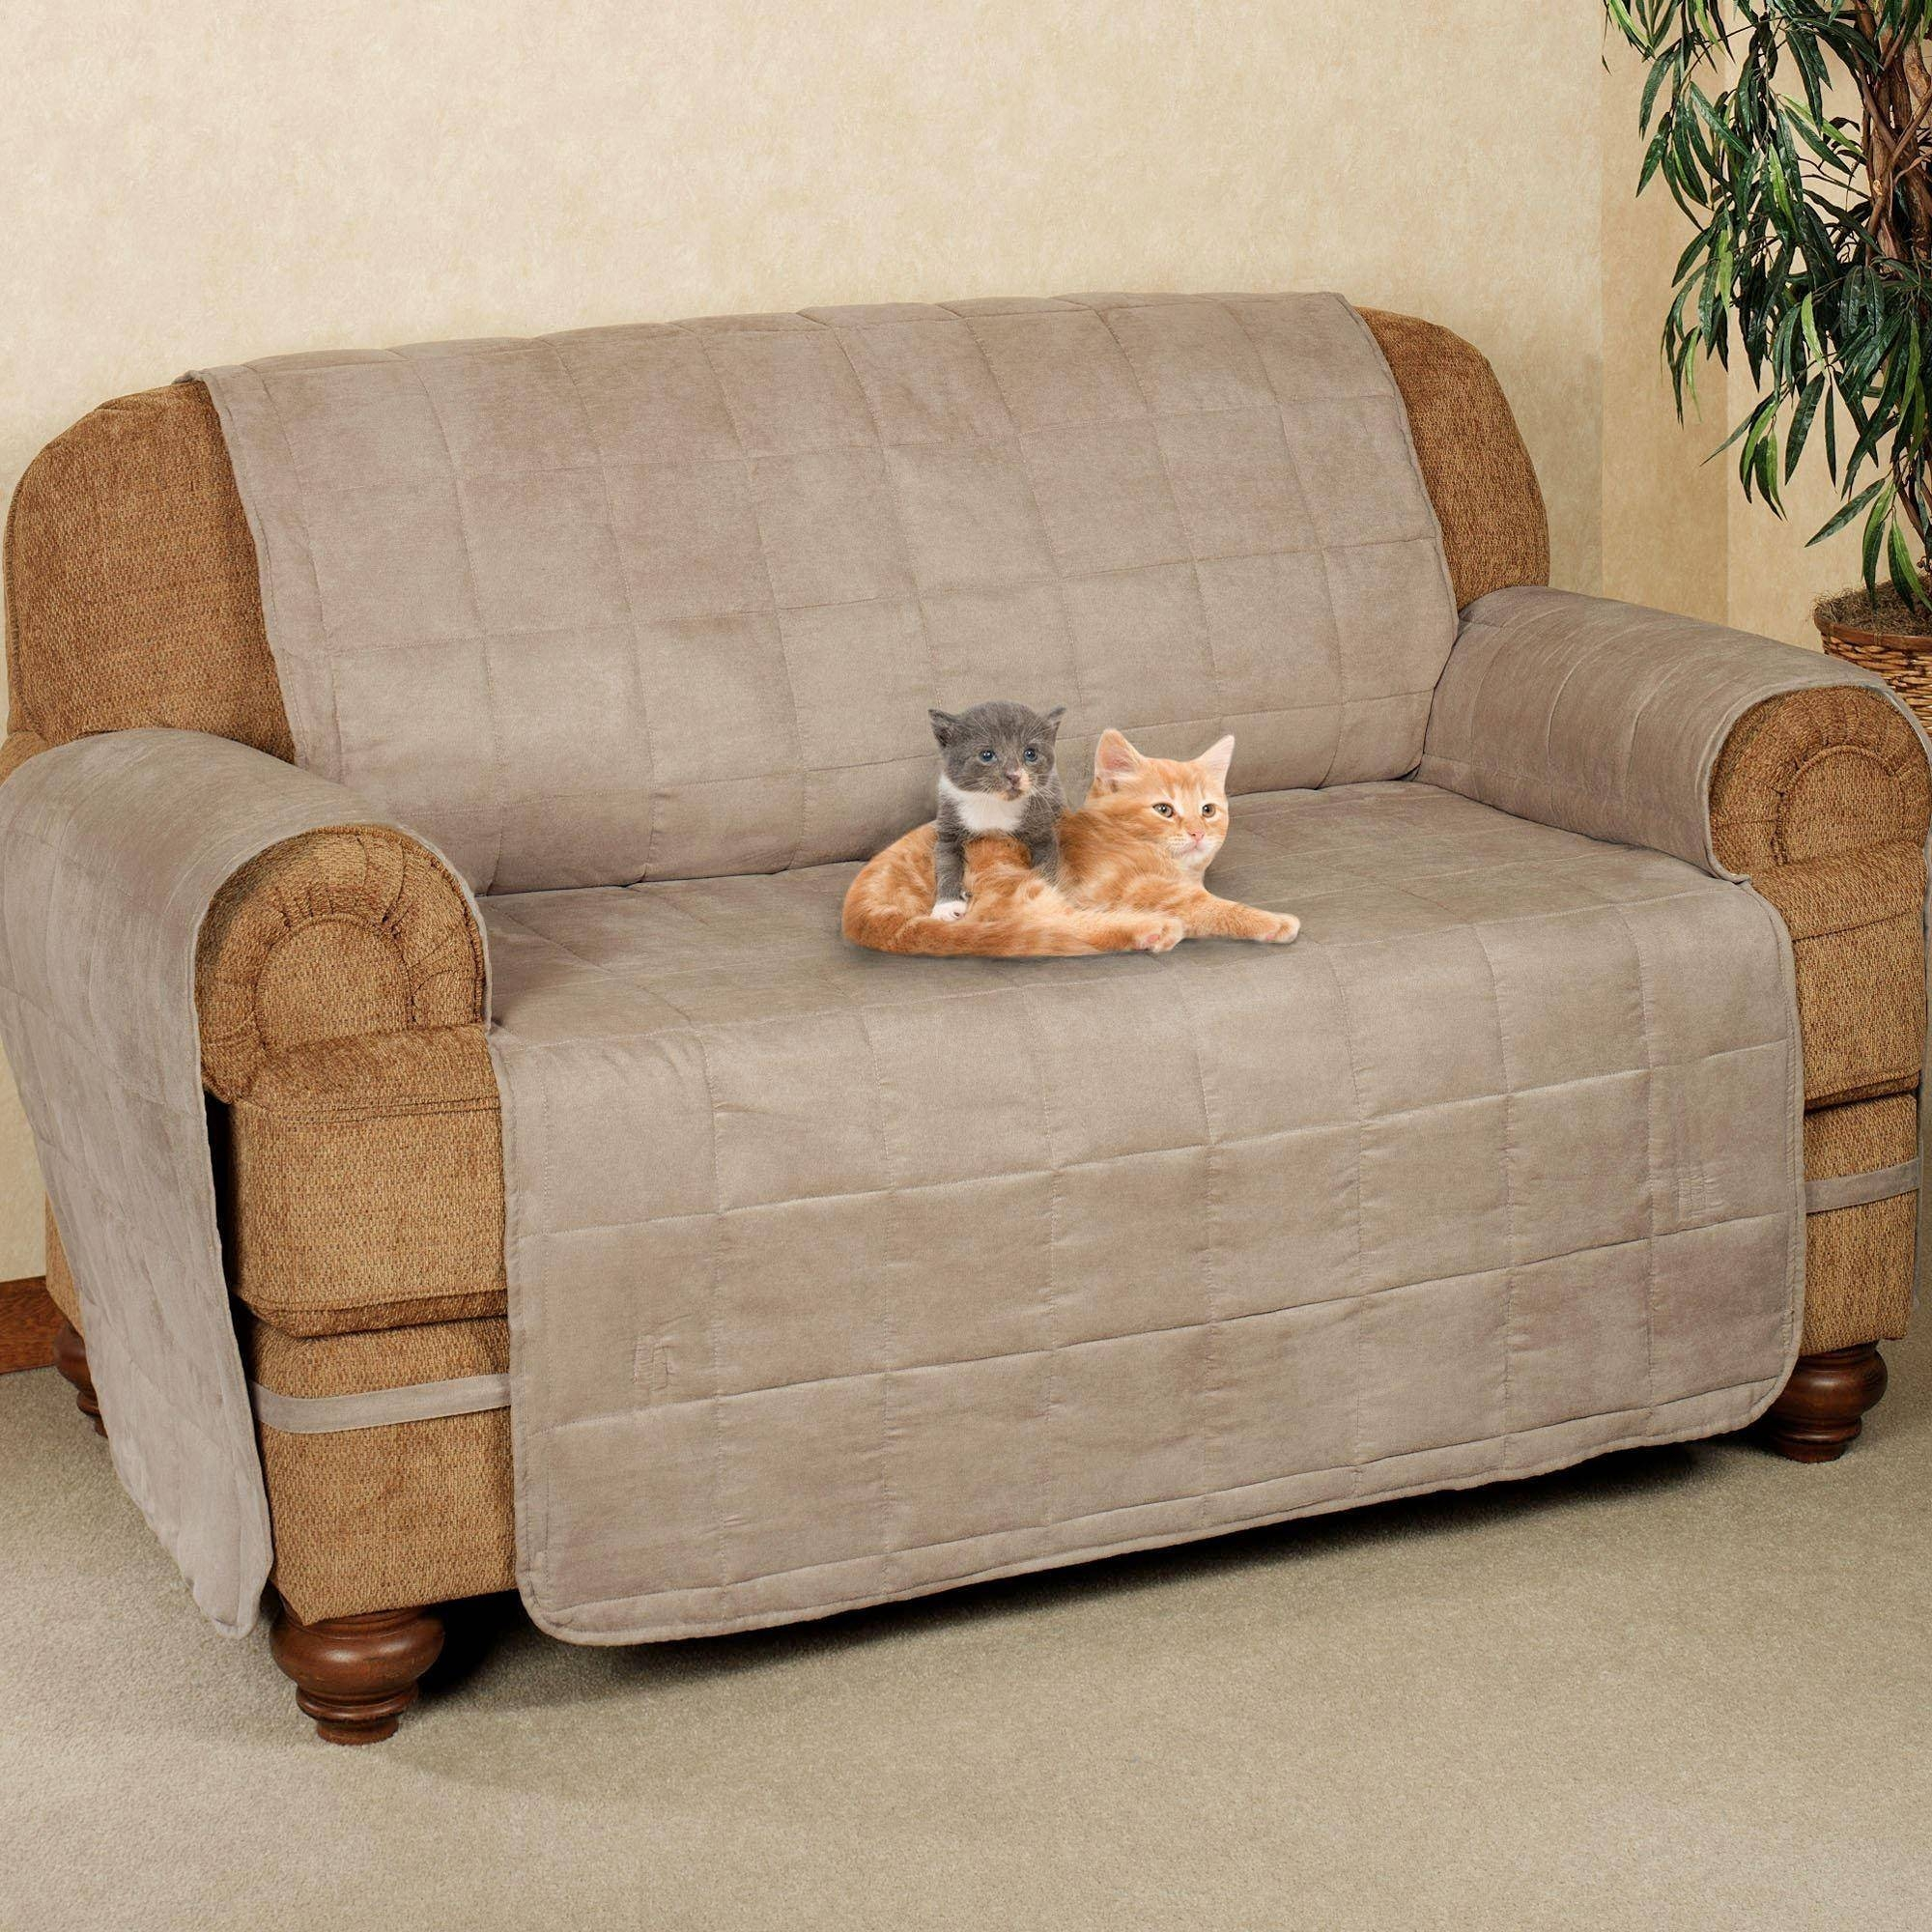 20 Collection Of Pet Proof Sofa Covers | Sofa Ideas Within Cat Proof Sofas (View 1 of 15)